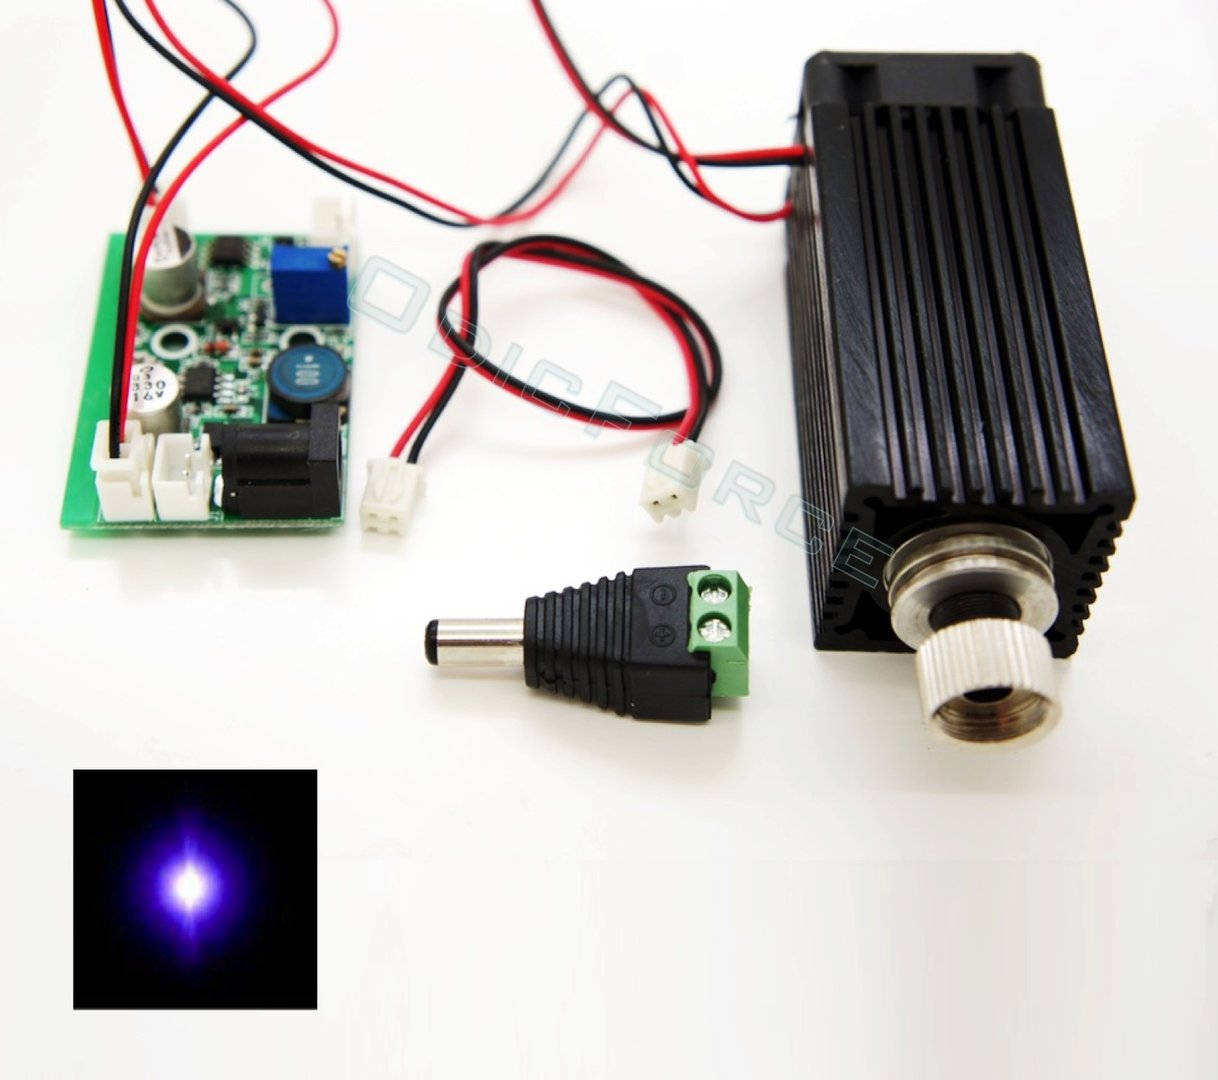 500-600mW 405nm (Bluray) Focusing Laser Module  12V